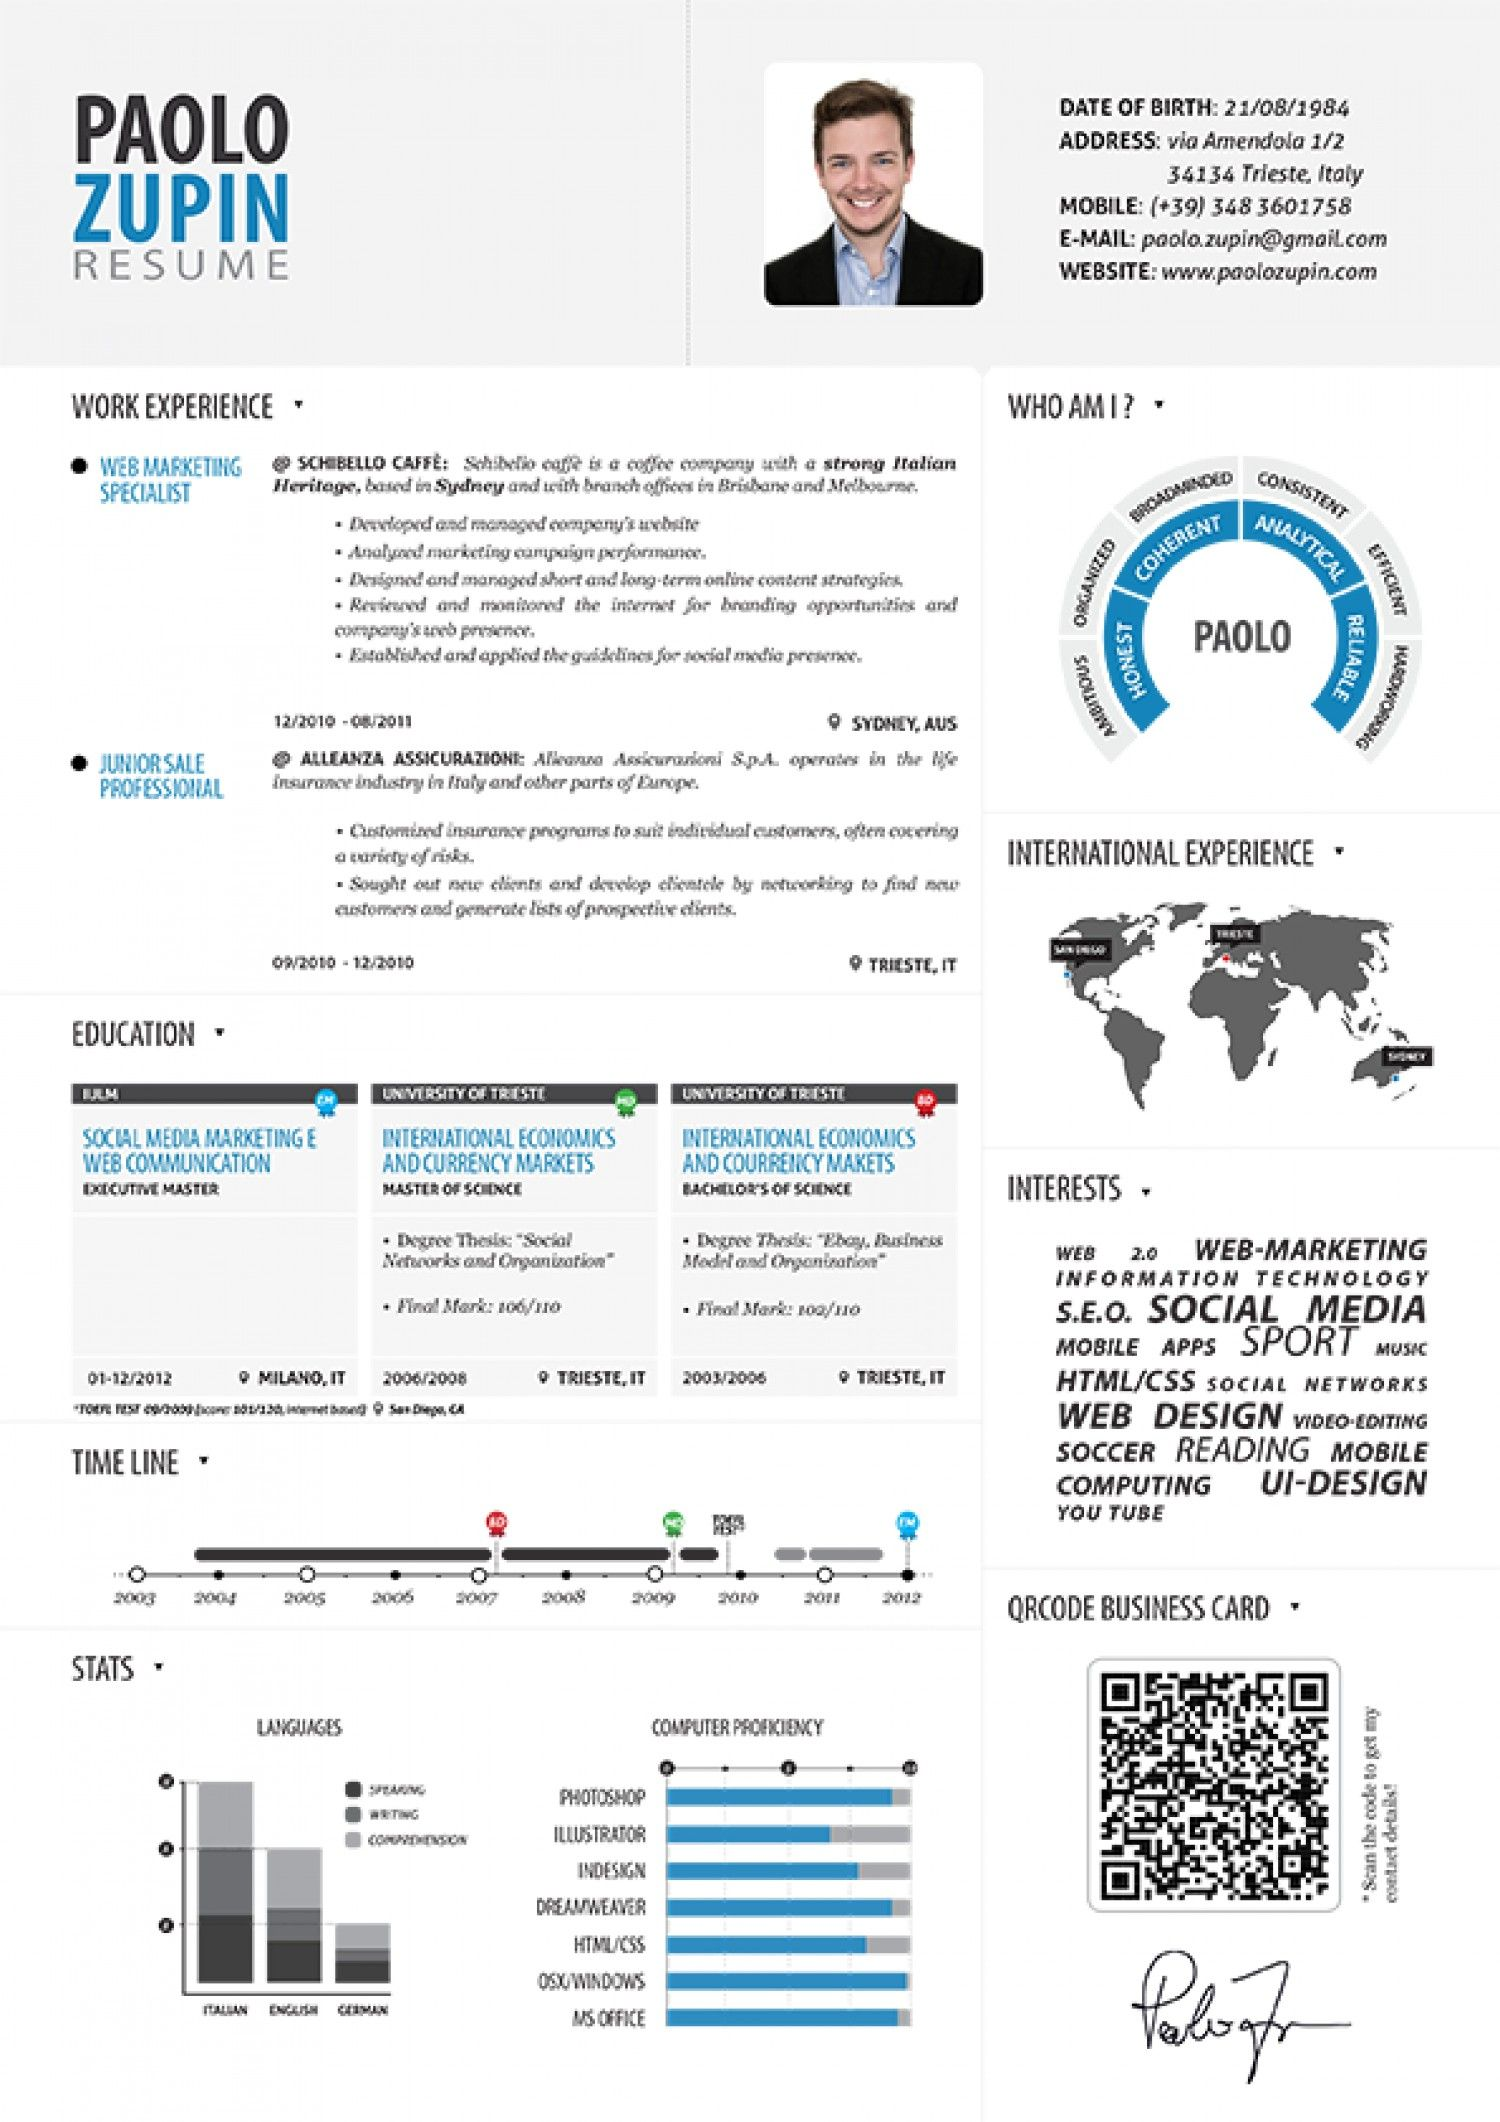 Opposenewapstandardsus  Marvellous  Images About Resume  Cv Design On Pinterest  Infographic  With Fair  Images About Resume  Cv Design On Pinterest  Infographic Resume Resume And Resume Design With Adorable Accounting Student Resume Also Pharmacy Technician Resume Objective In Addition Create Your Resume And Best Skills To Put On Resume As Well As Online Resume Examples Additionally Personal Interests On Resume From Pinterestcom With Opposenewapstandardsus  Fair  Images About Resume  Cv Design On Pinterest  Infographic  With Adorable  Images About Resume  Cv Design On Pinterest  Infographic Resume Resume And Resume Design And Marvellous Accounting Student Resume Also Pharmacy Technician Resume Objective In Addition Create Your Resume From Pinterestcom